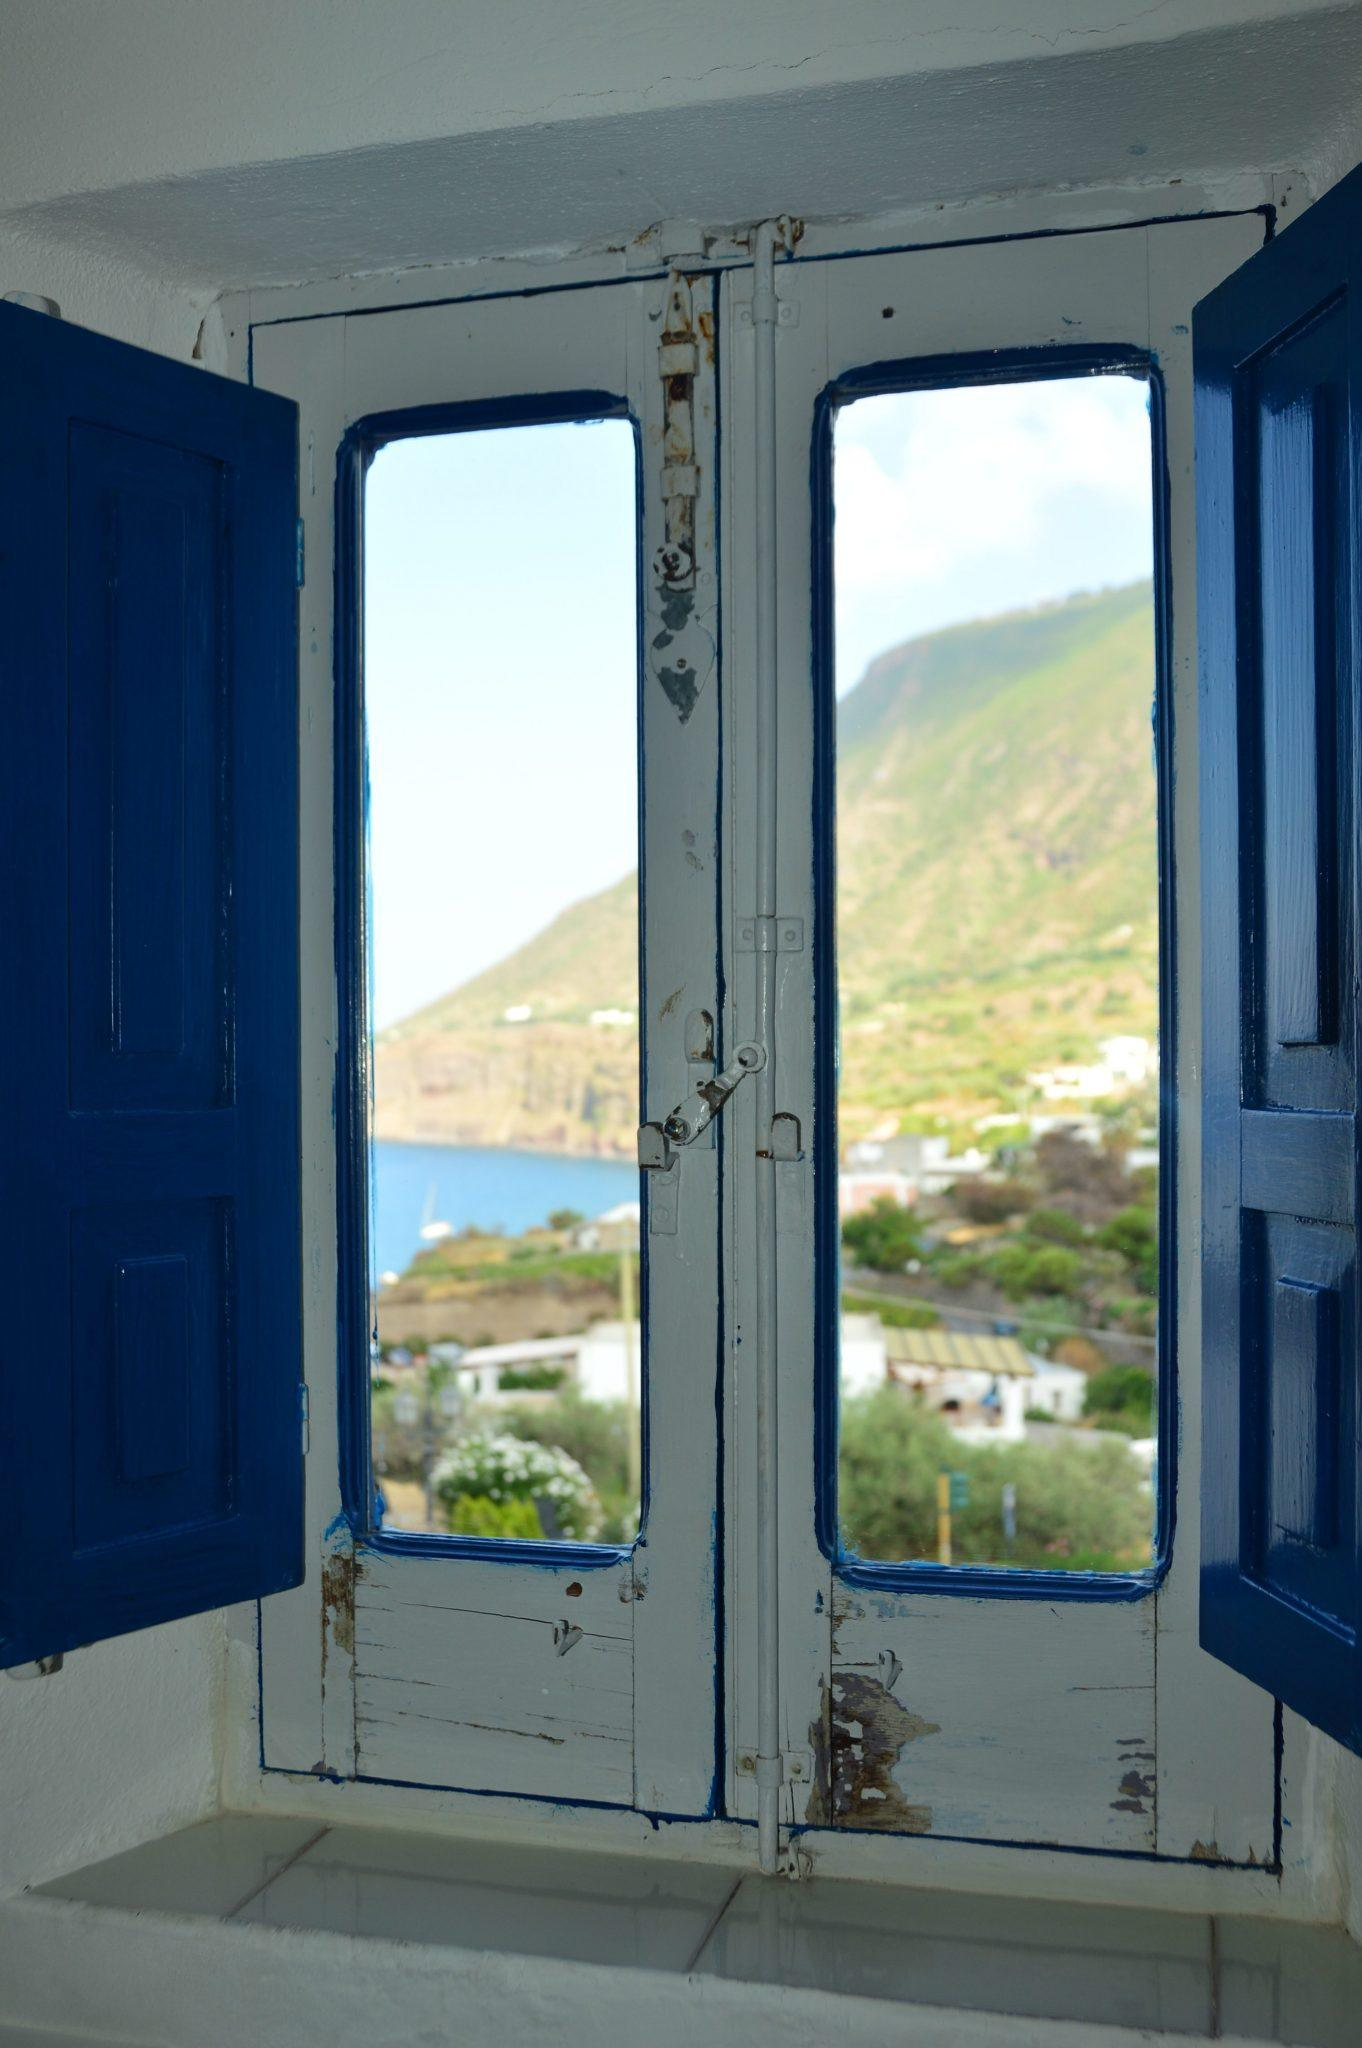 window with blue shutters looking onto an aeolian island